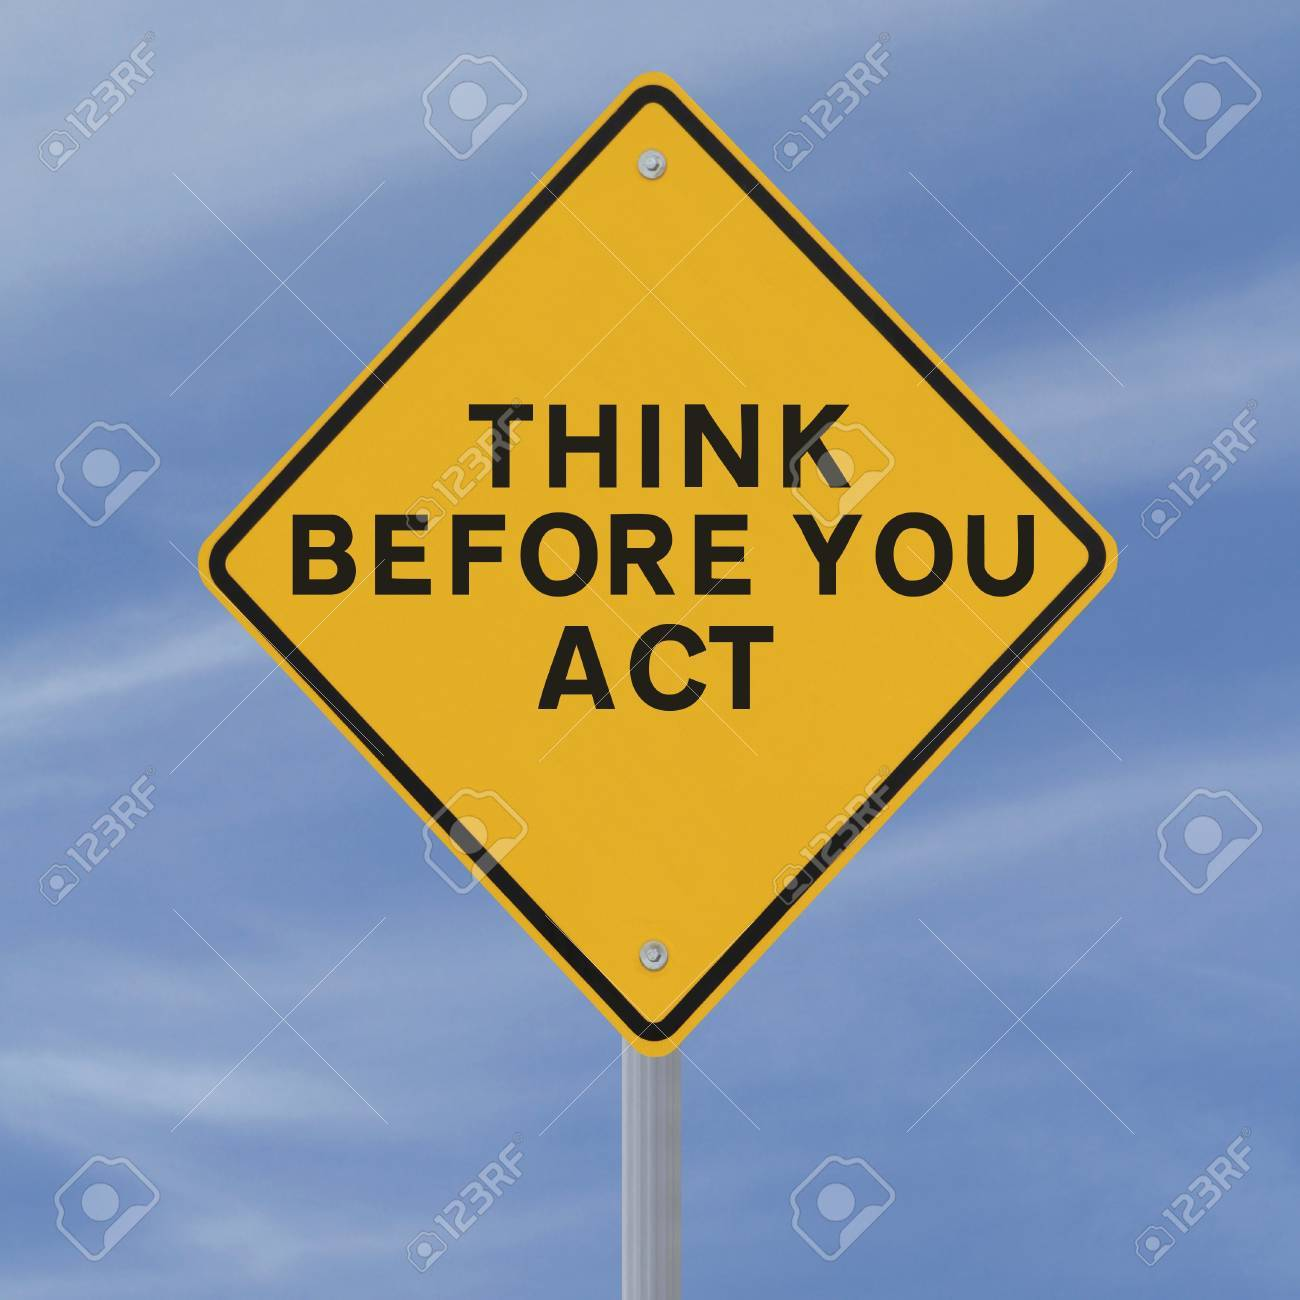 A road sign indicating a safety reminder or saying (against a blue sky background) applicable to workplace or road safety Stock Photo - 15081903